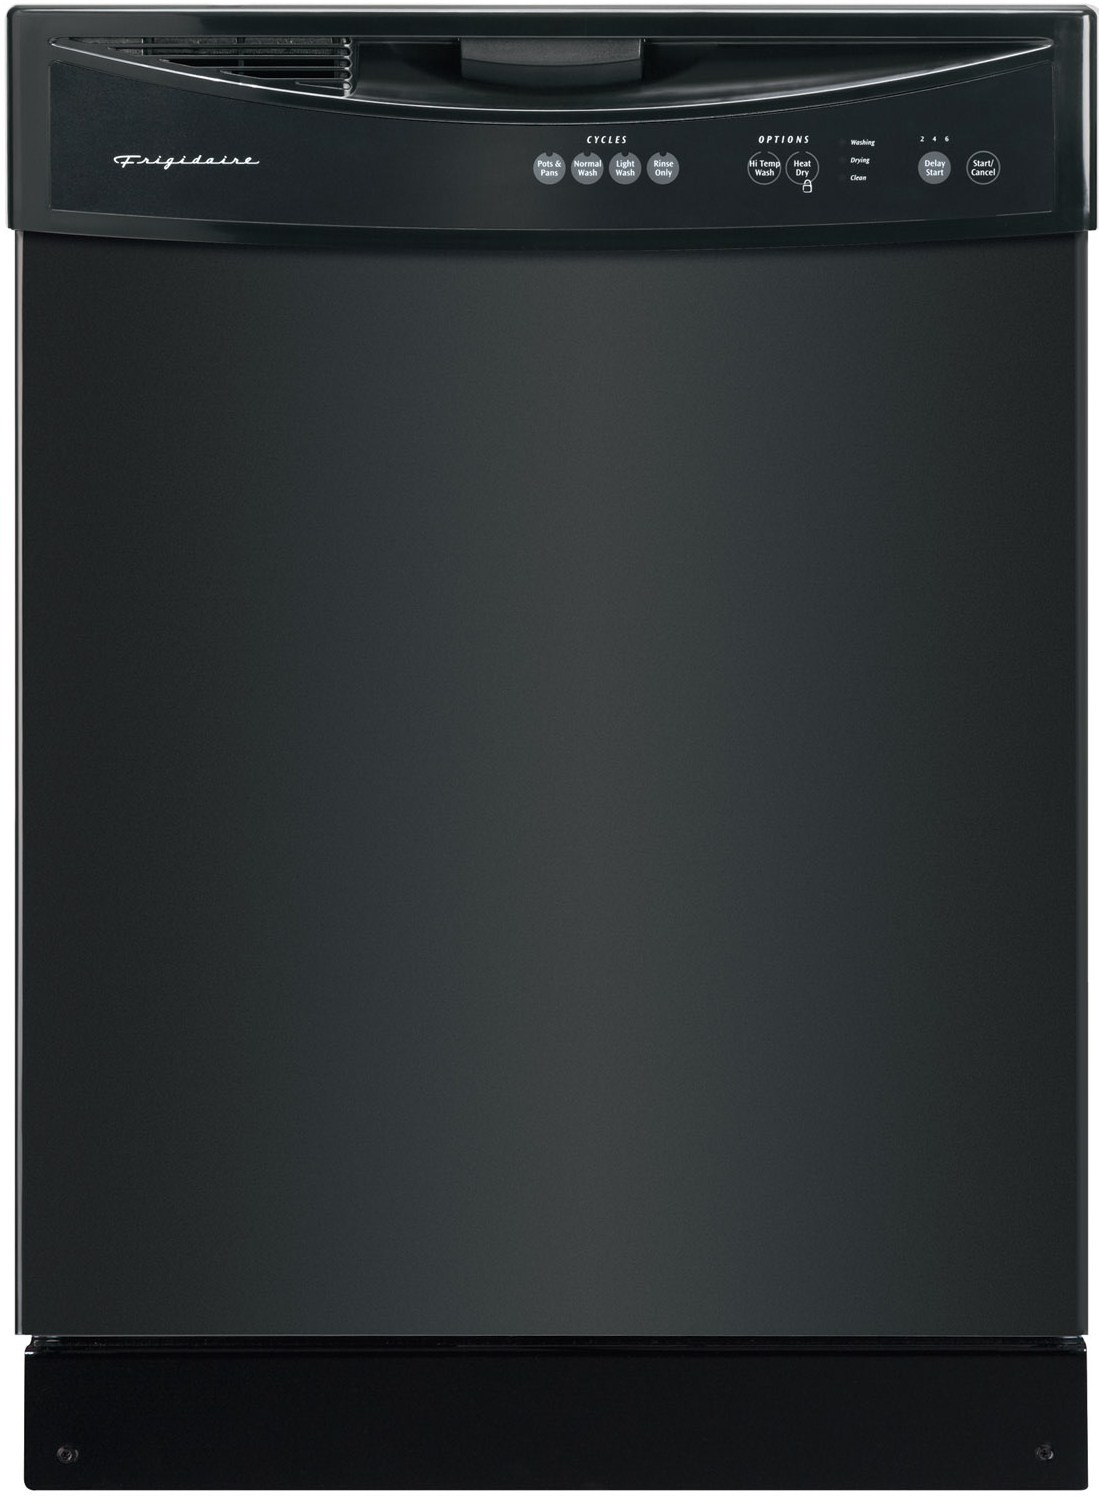 Frigidaire Dishwasher Specifications Blogs Avenue